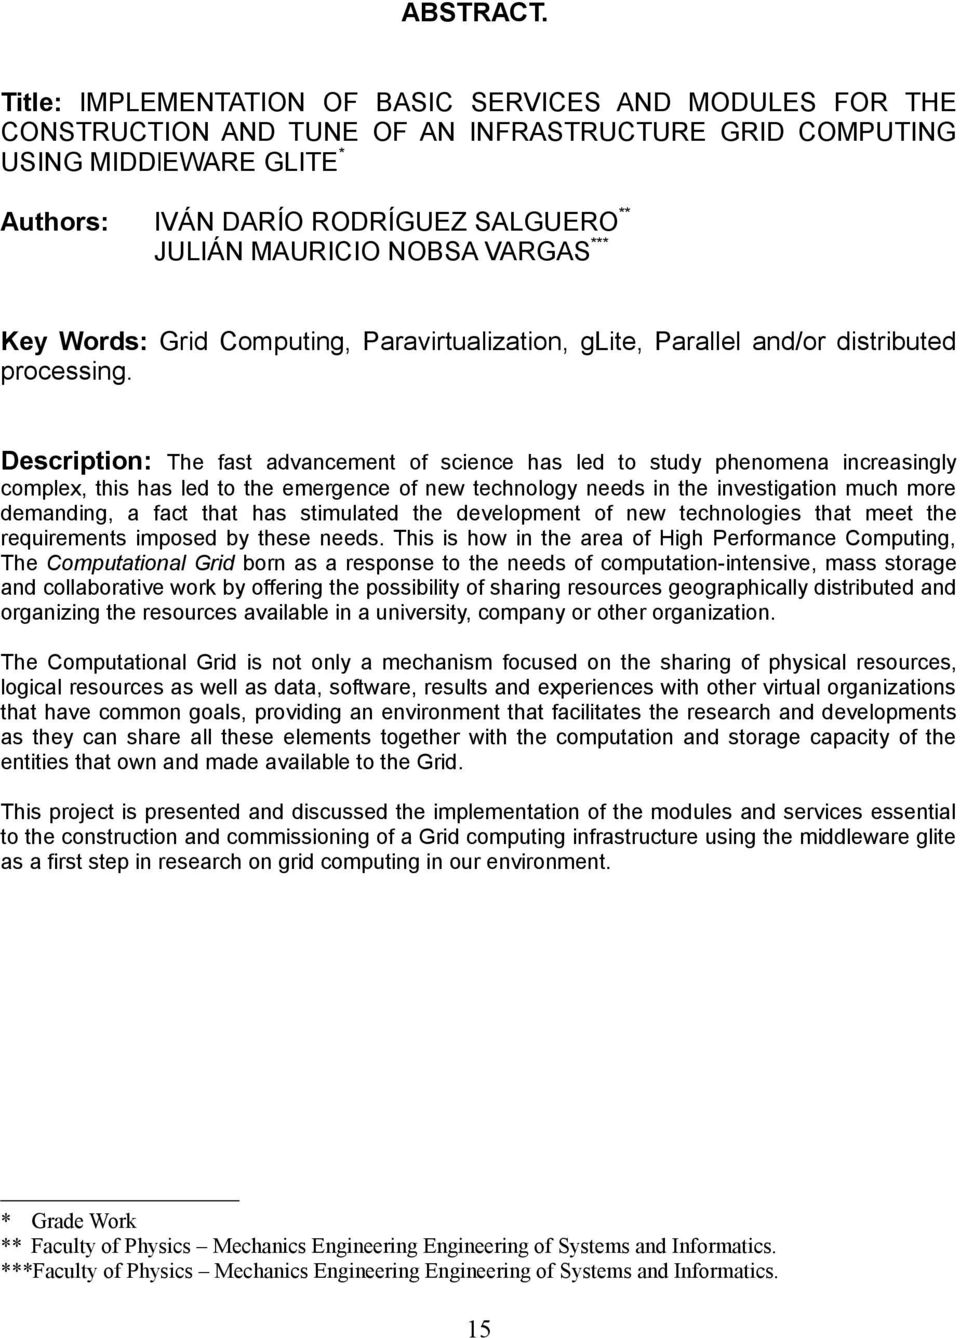 NOBSA VARGAS*** Key Words: Grid Computing, Paravirtualization, glite, Parallel and/or distributed processing.